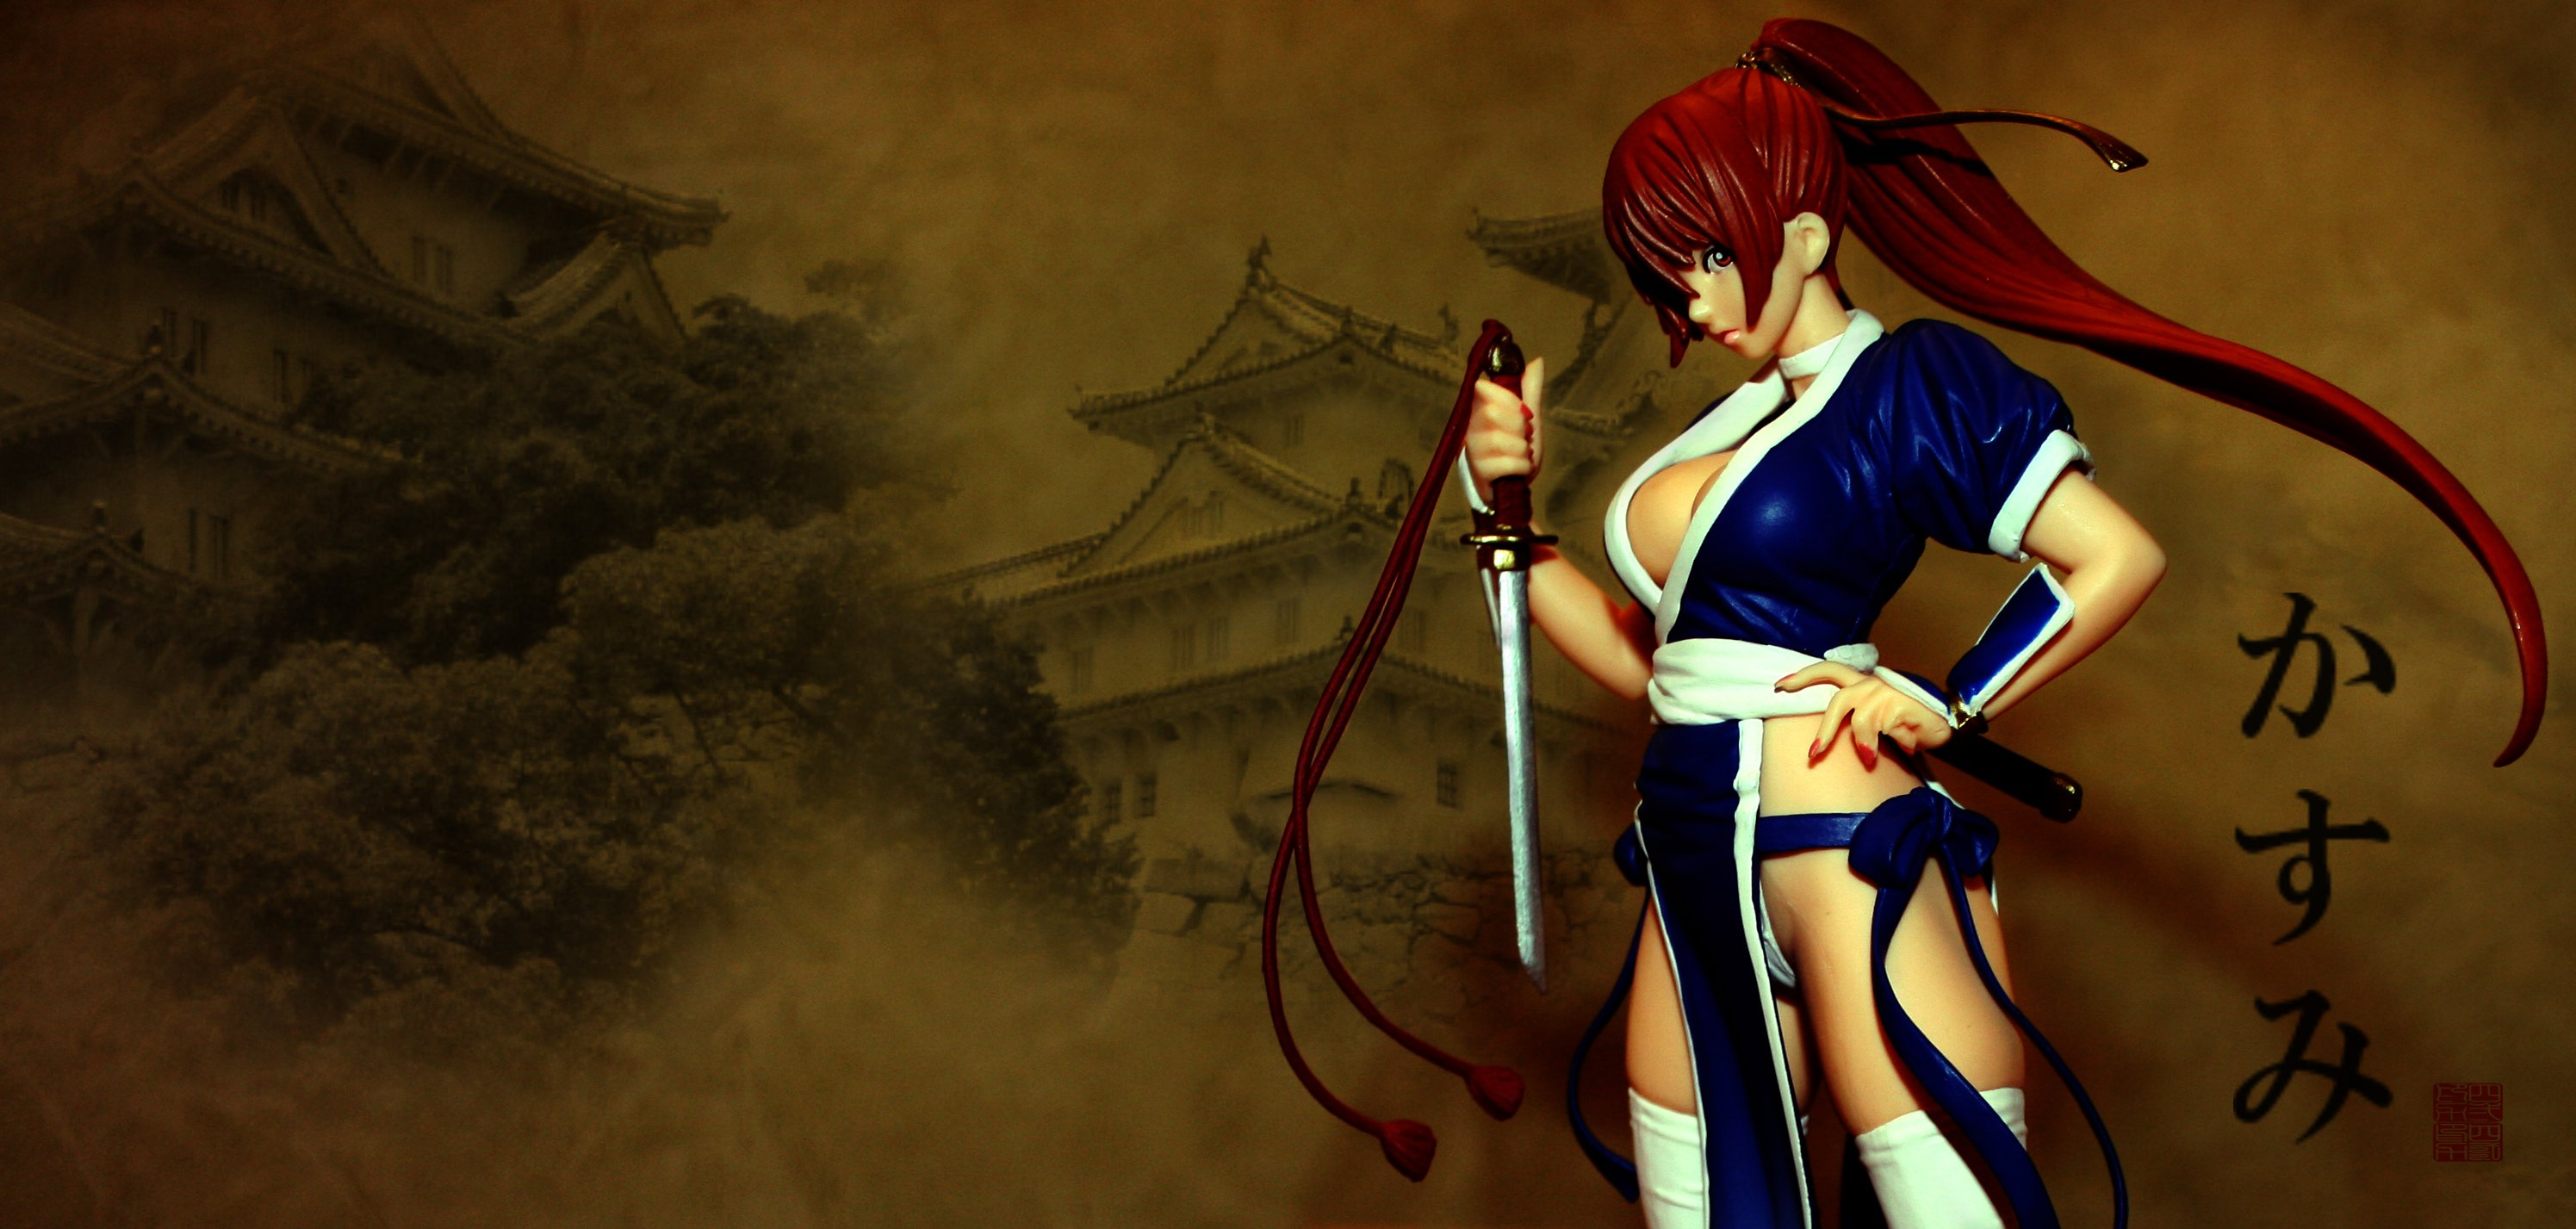 Dead Or Alive Full HD Wallpaper and Background 2991x1427 2991x1427